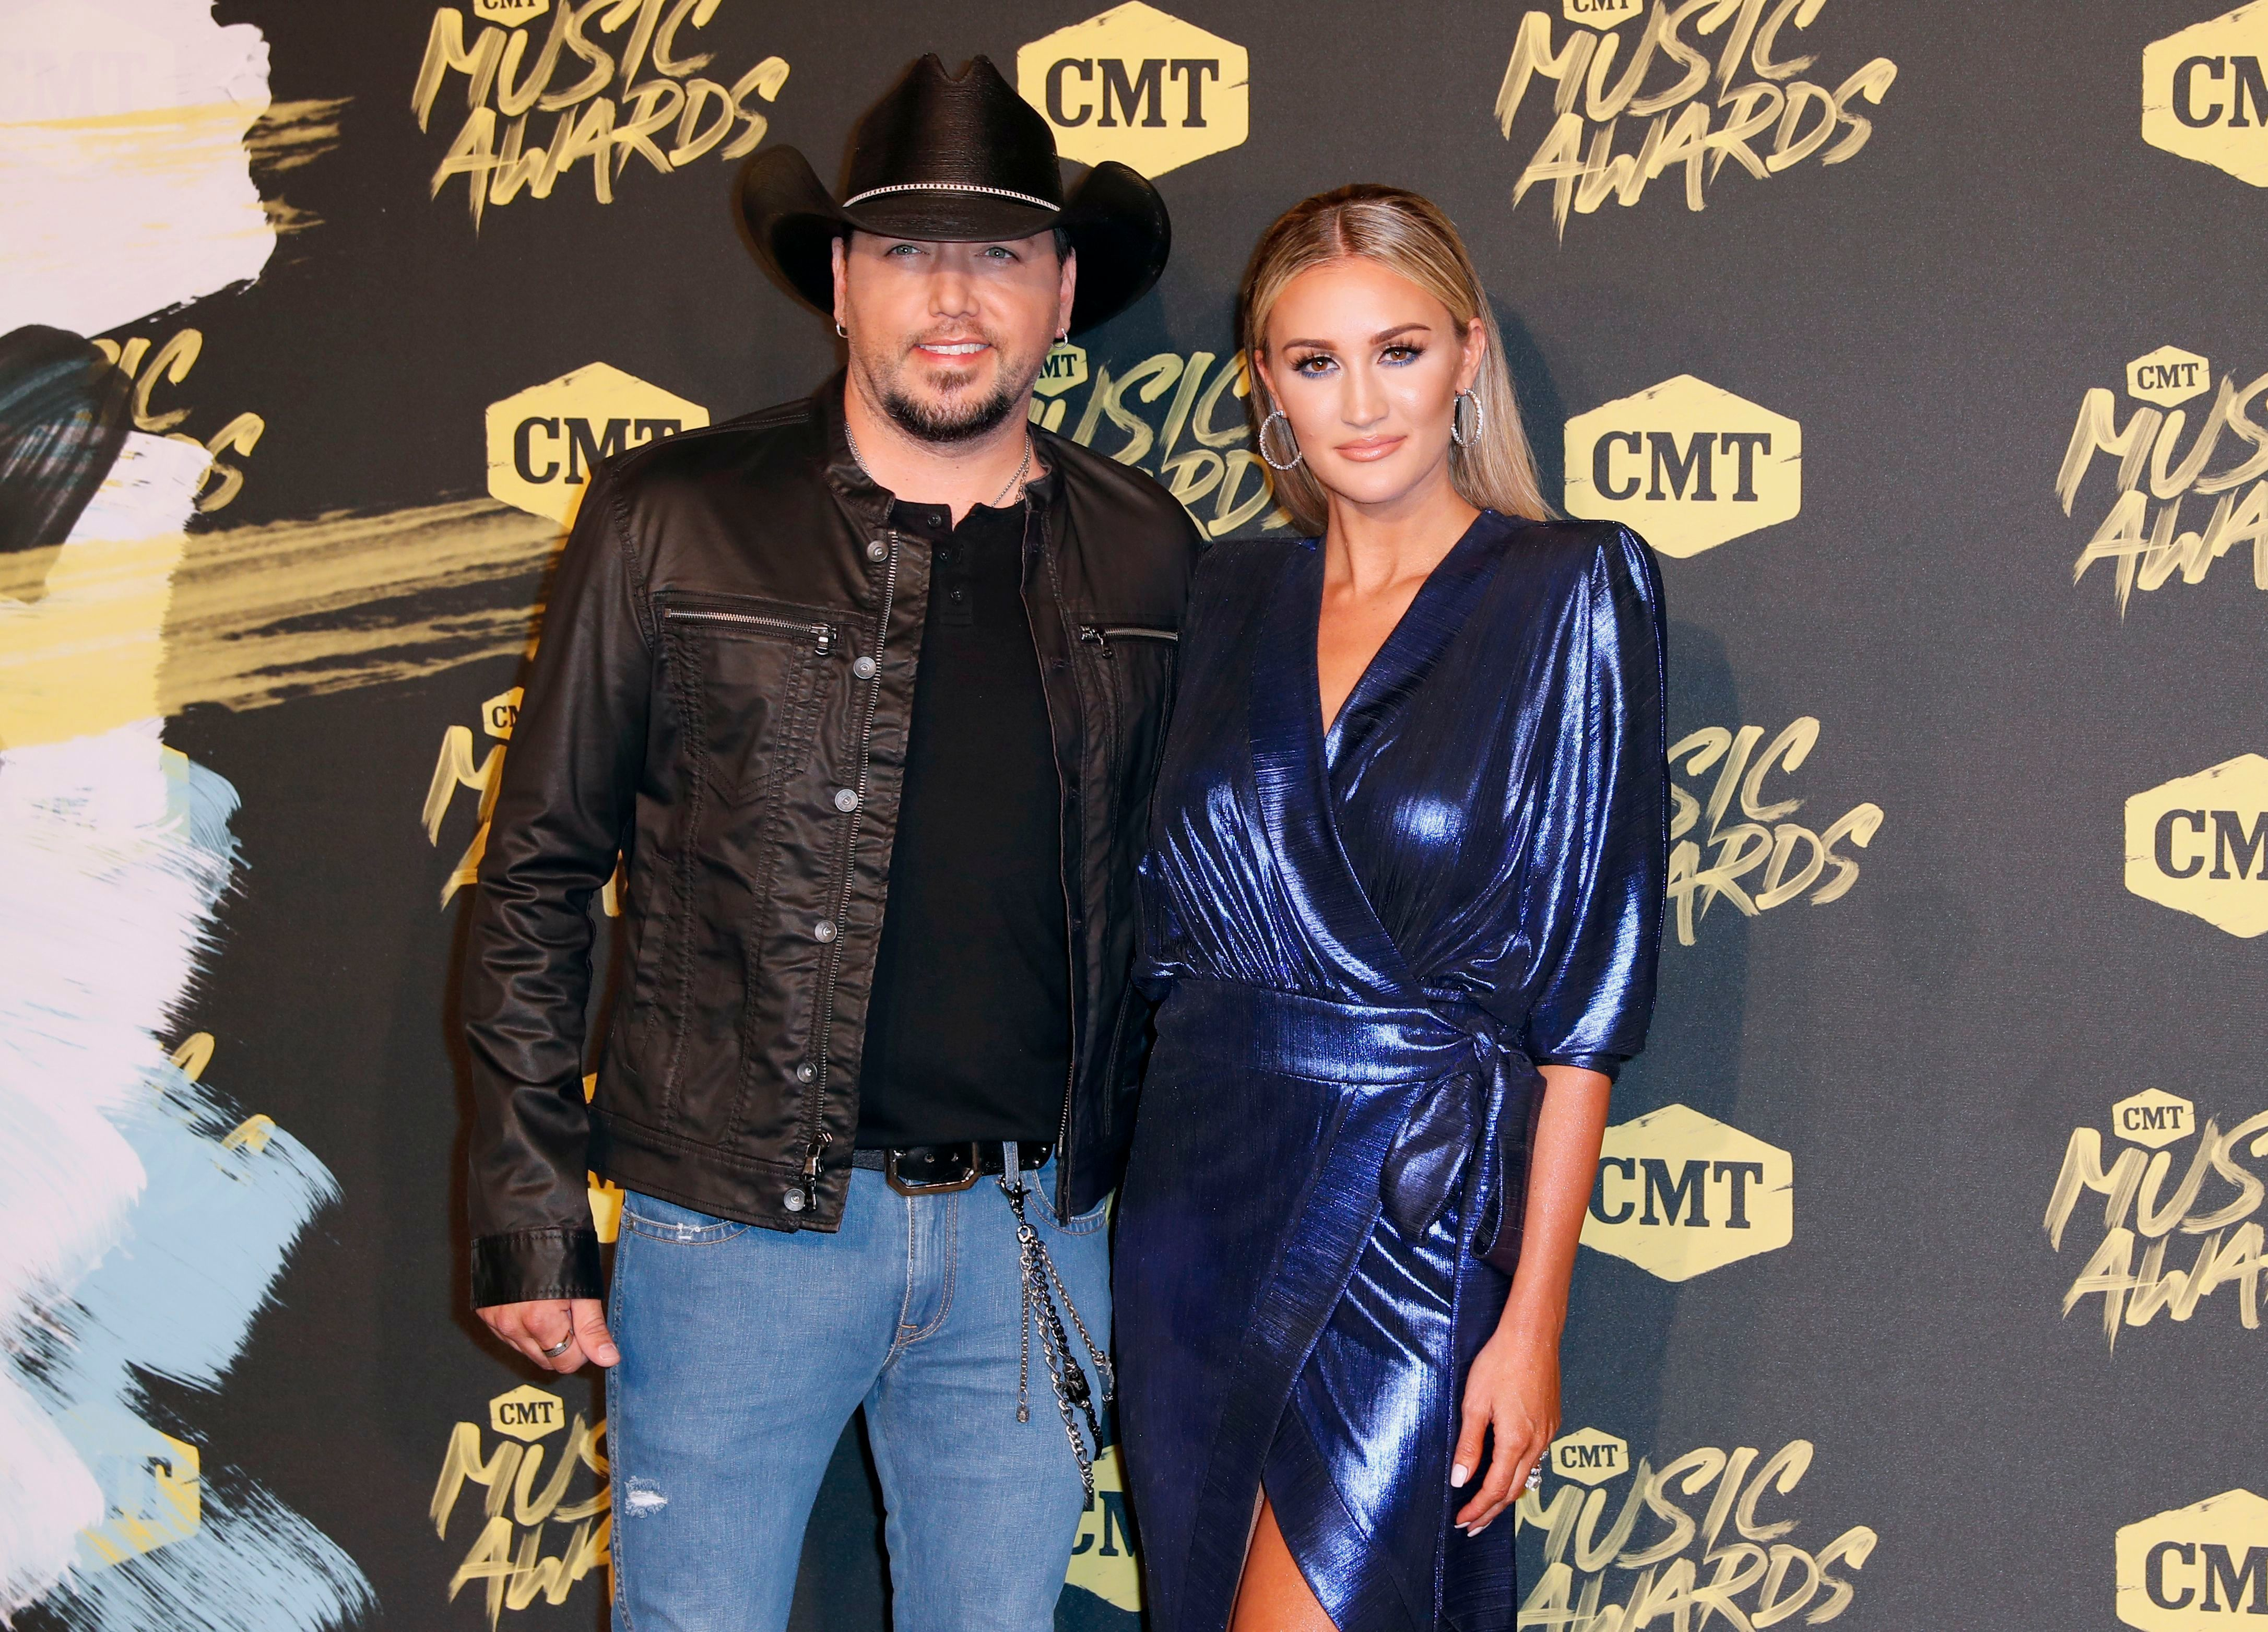 Jason Aldean and wife Brittany Kerr arrive at the CMT Music Awards at the Bridgestone Arena in Nashville on June 6, 2018.